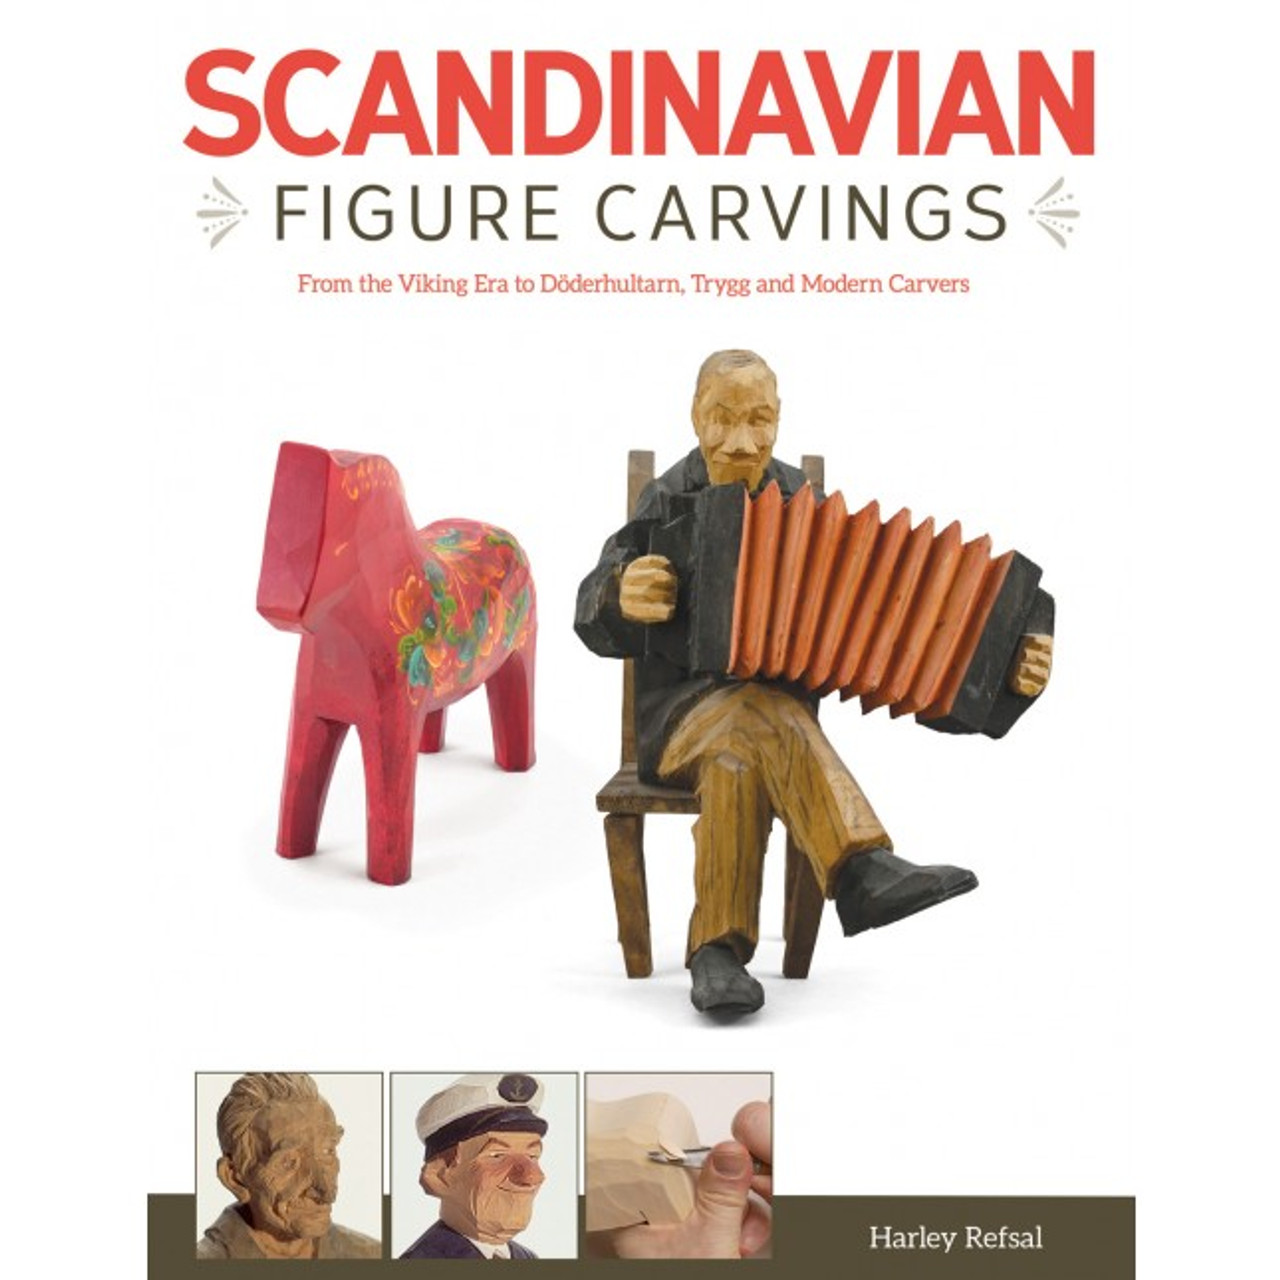 Scandinavian Figure Carvings showing a carving of a man with an Accordion.